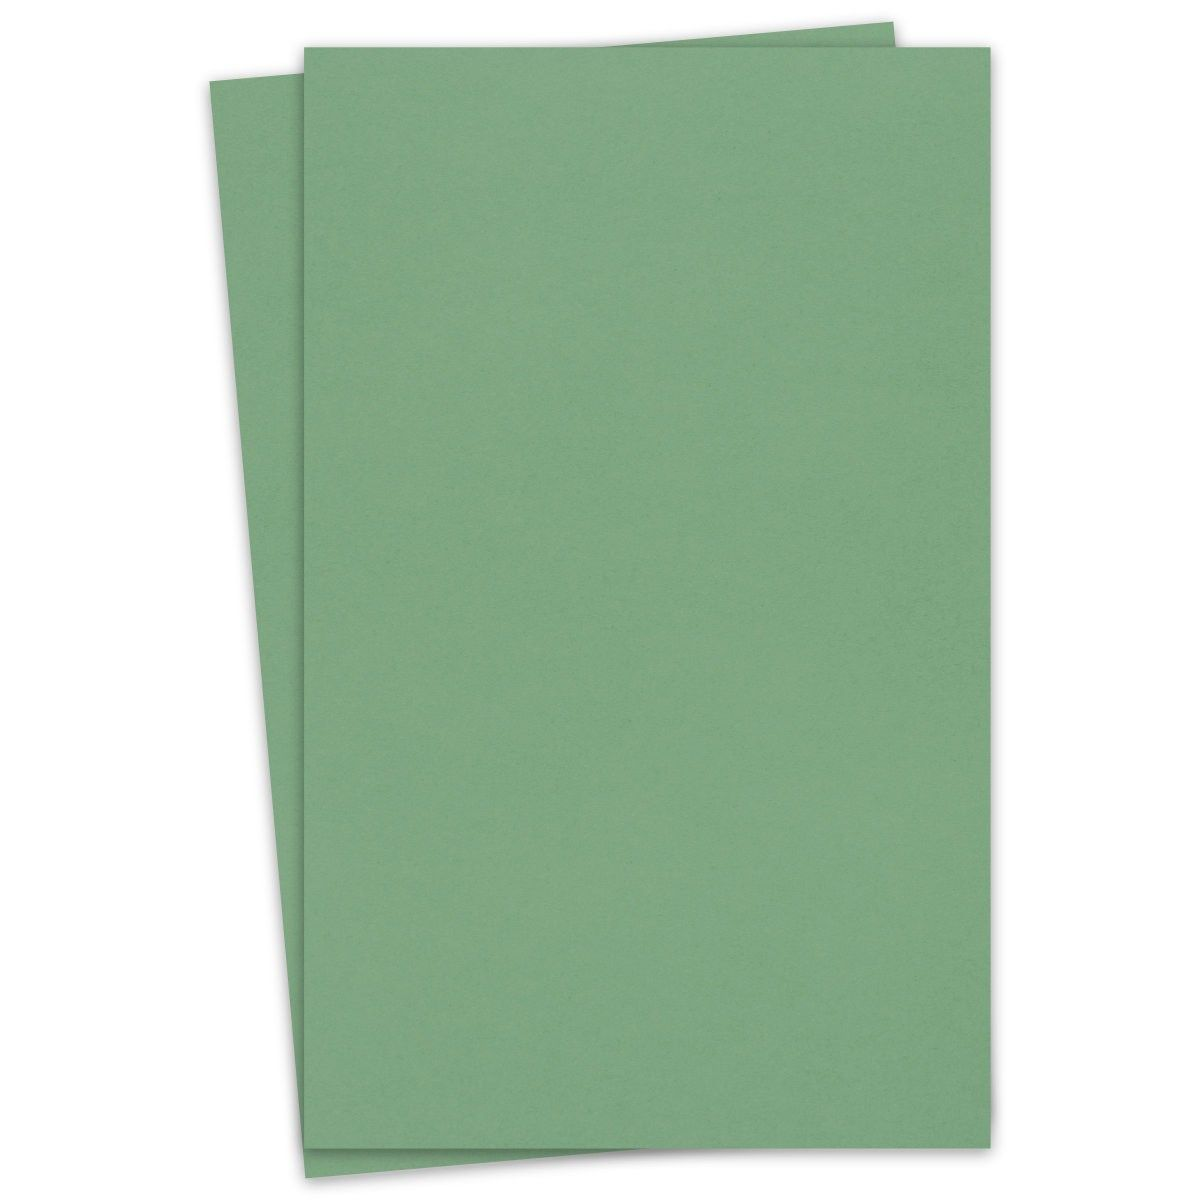 Clearance Matcha Tea Keaykolour 11x17 Ledger Size Paper 32 80lb Text 200 Pk Matcha Tea Matcha Legal Size Paper